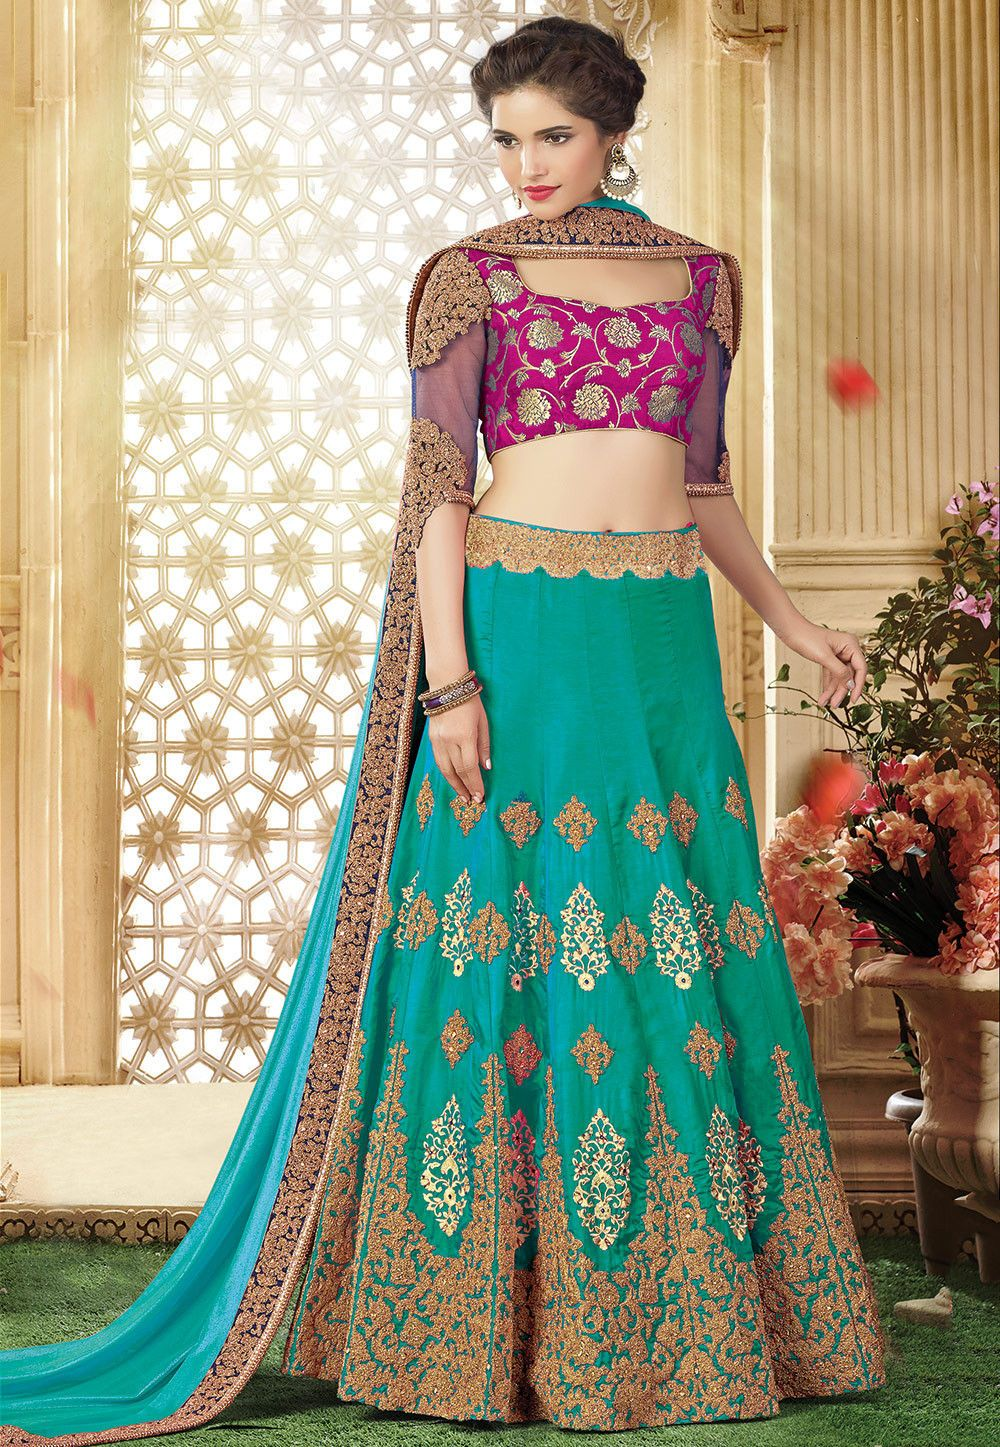 Buy Embroidered Art Silk Lehenga In Teal Green And Sky Blue Online Item Code Lxw436 Color Green Occasion Designer Lehenga Choli Silk Lehenga Lehenga Choli